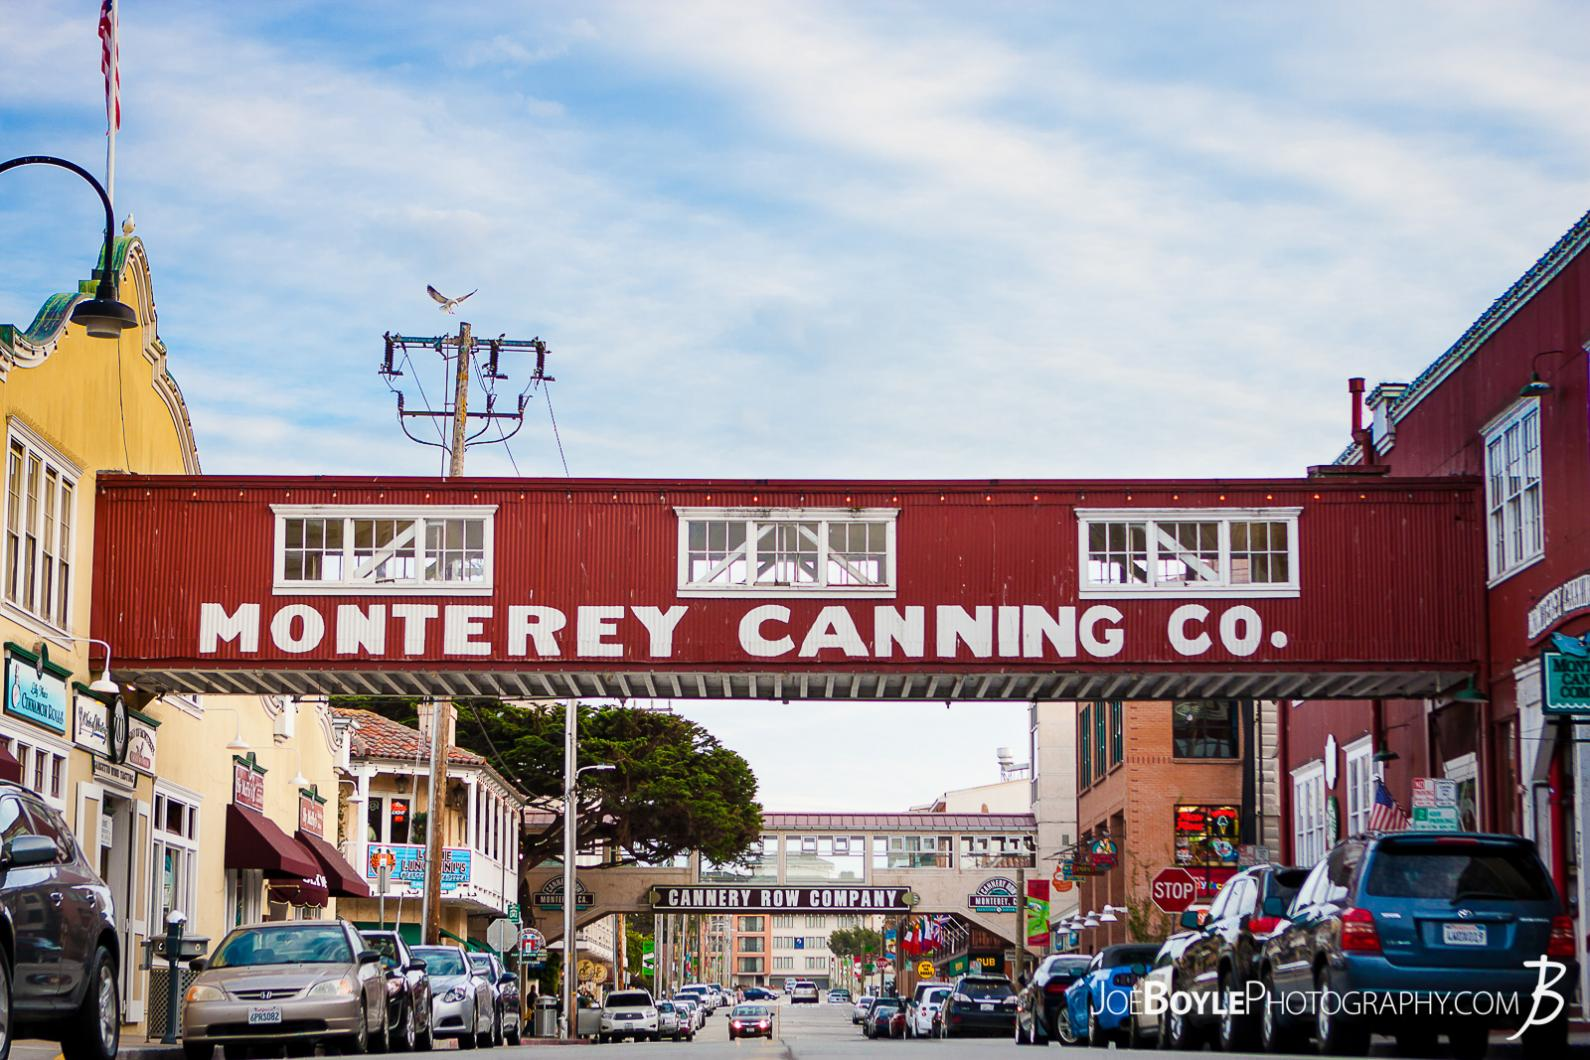 I was so excited to visit Cannery Row on my visit to Monterey California! I had recently finished reading East of Eden by John Steinbeck and was eager to visit places where he grew up.